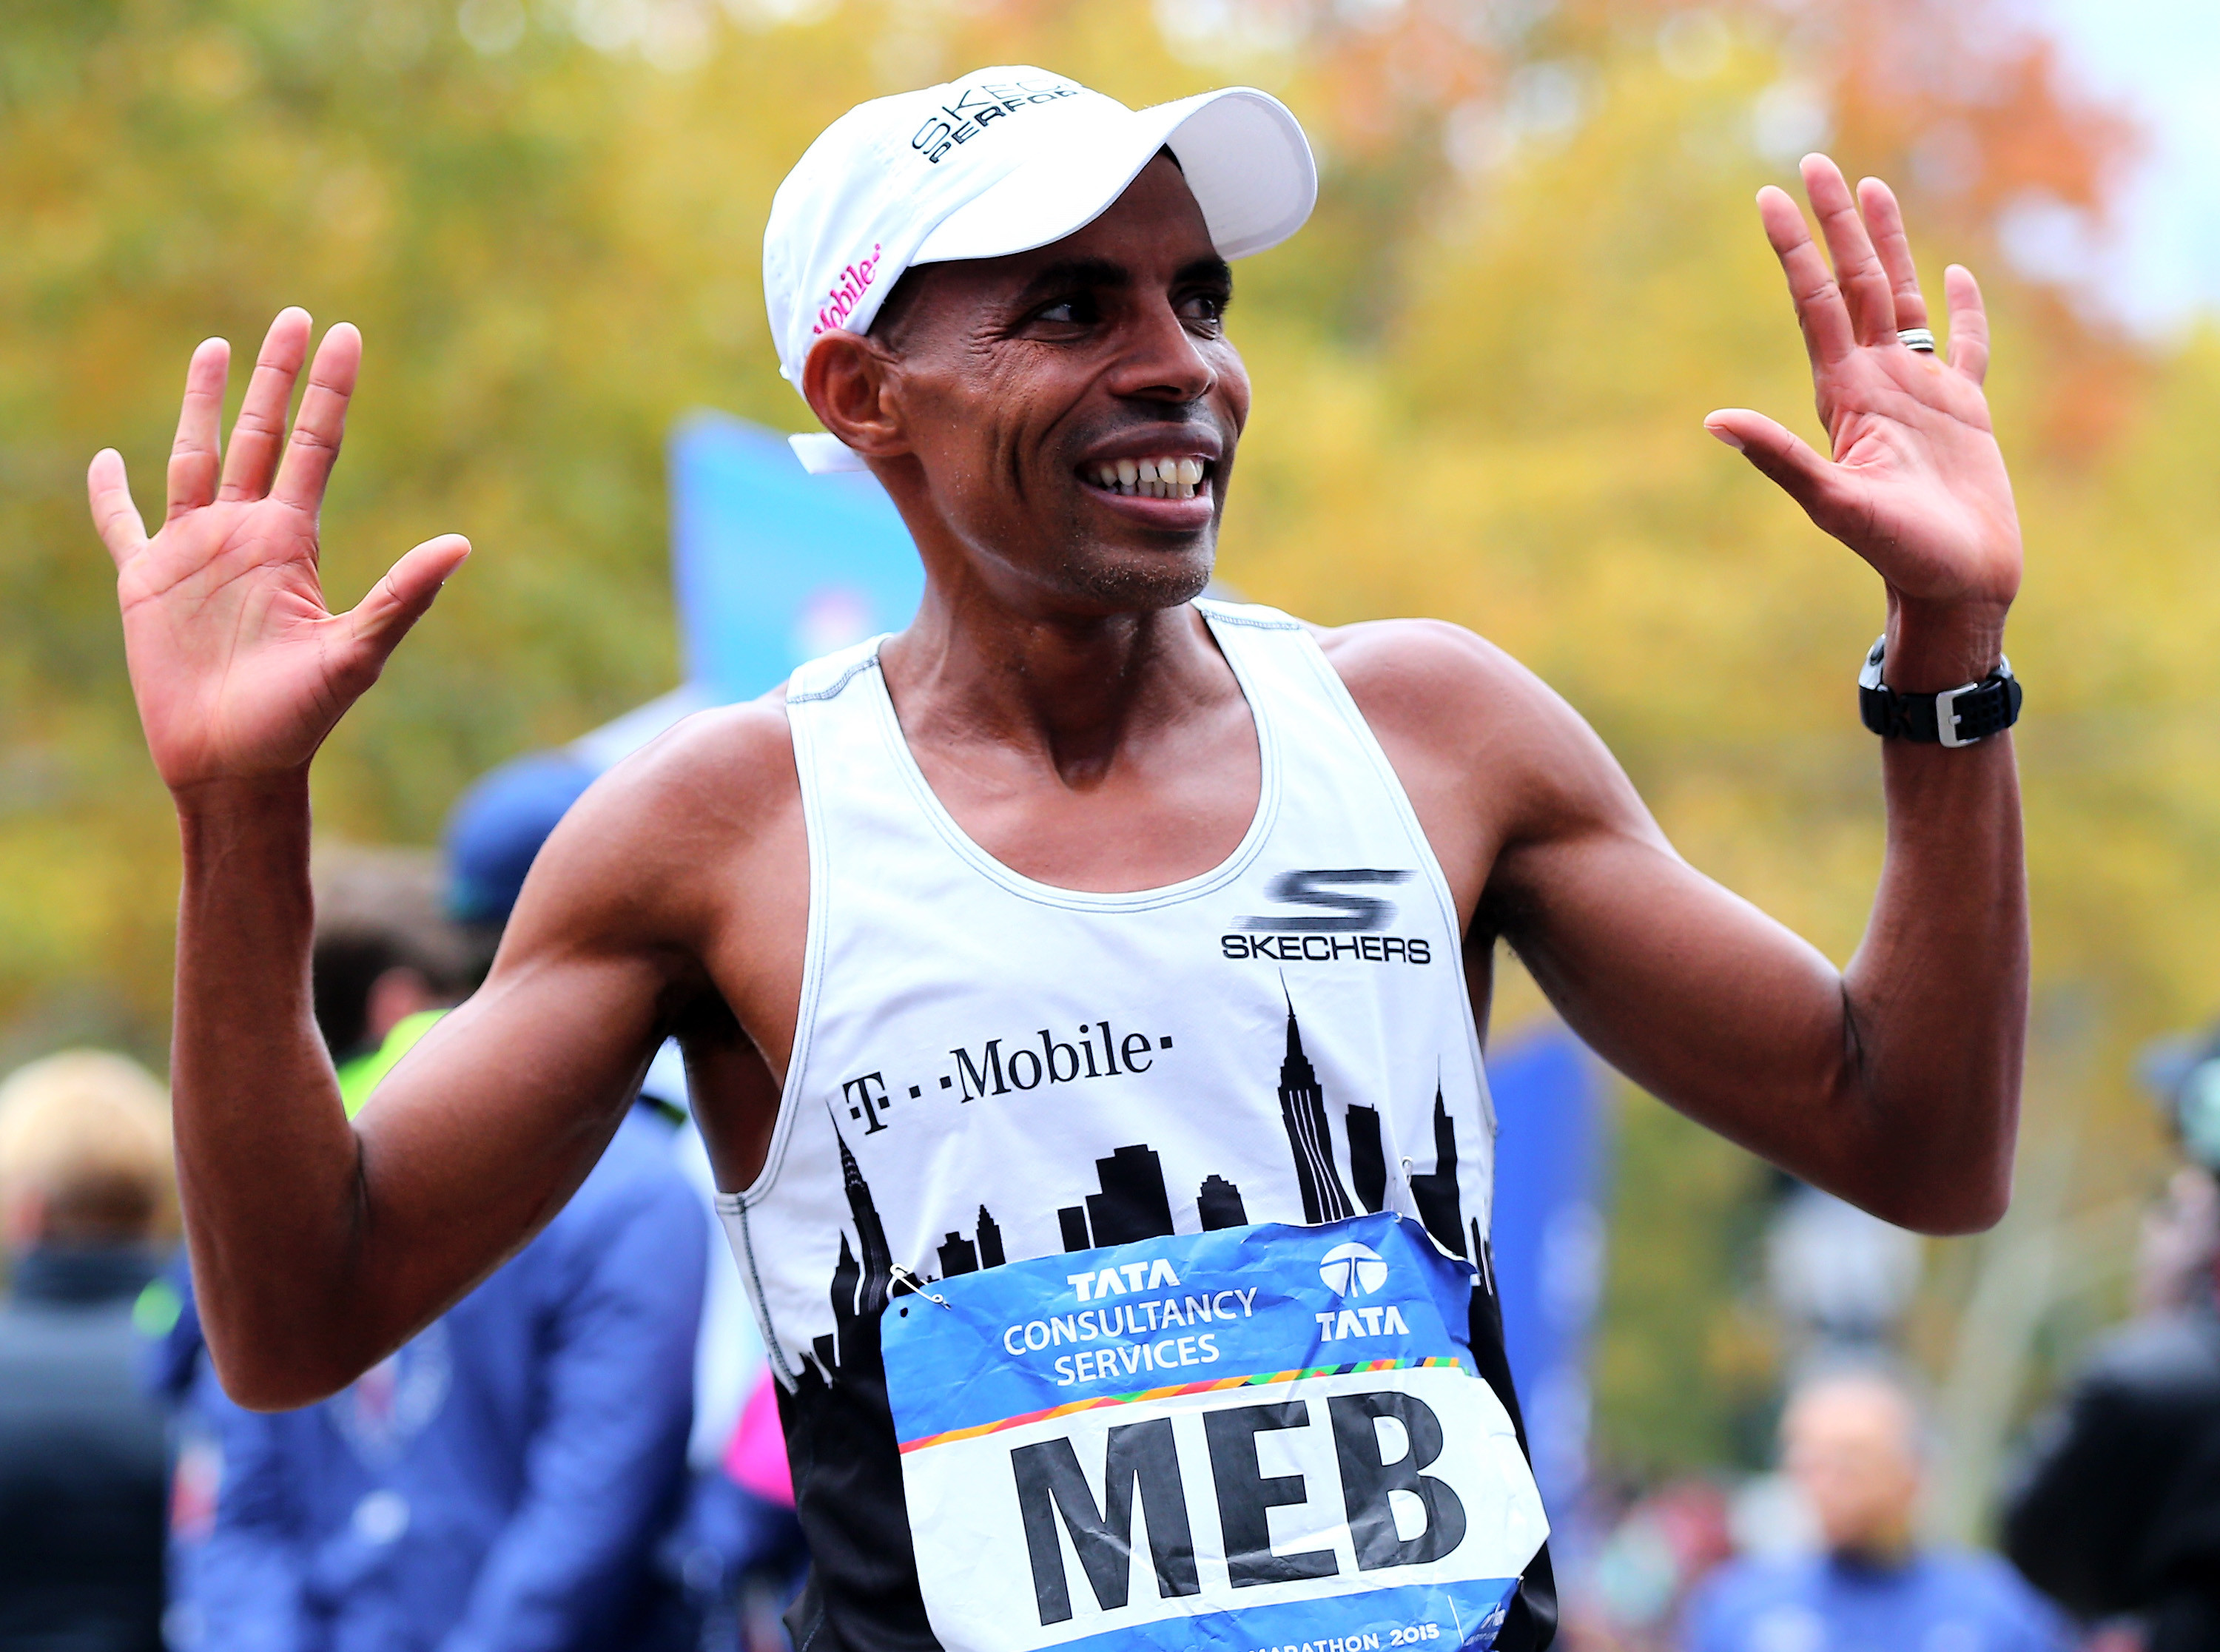 Meb Keflezighi will be pacing at the 2019 Yuengling Shamrock Marathon